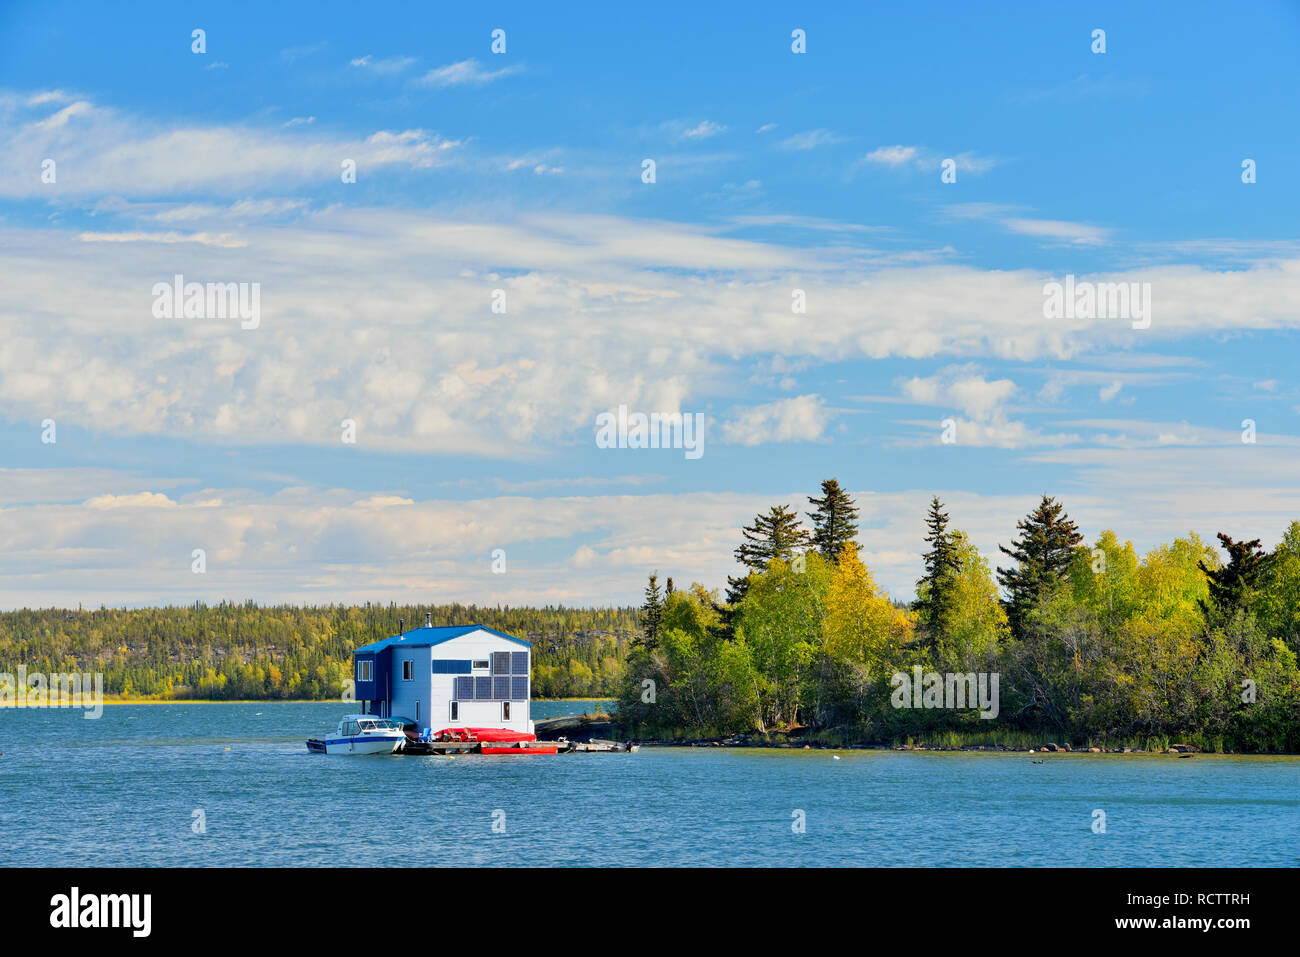 Houseboat on Great Slave Lake, Yellowknife, Northwest Territories, Canada - Stock Image